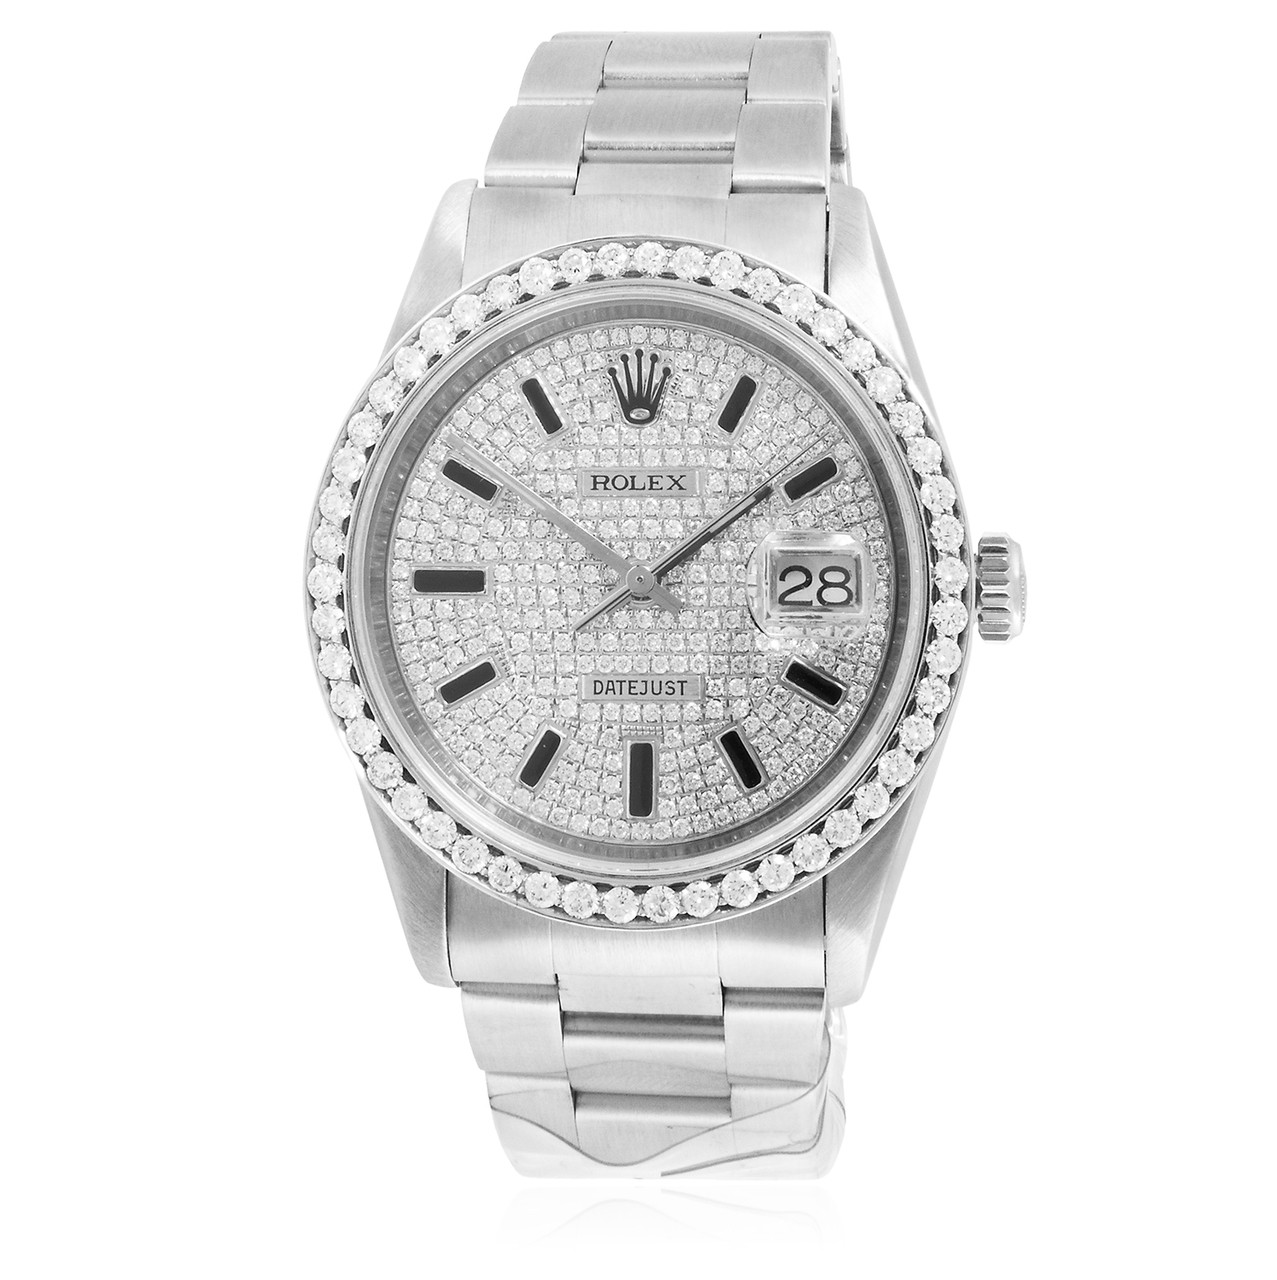 Stainless Rolex Rolex Datejust Ii Stainless Steel 4ct Diamond Dial Automatic Men S Watch